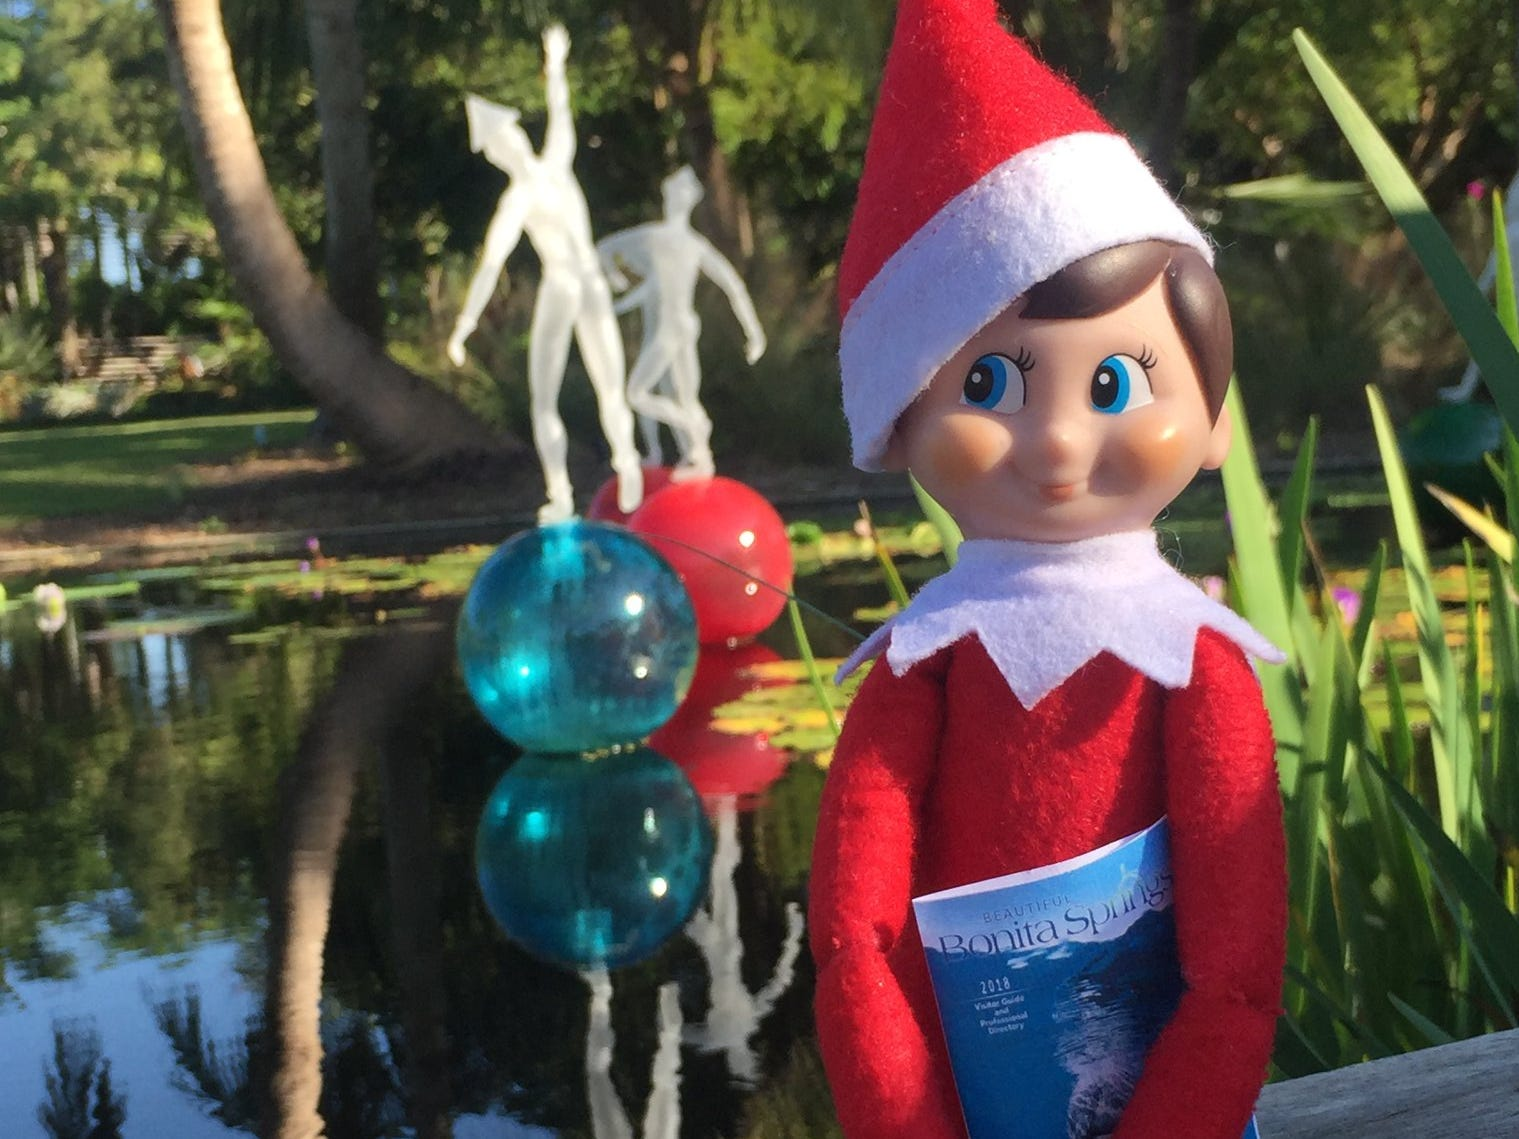 Chauncey the Elf from the Bonita Springs Area Chamber of Commerce visits member businesses every December. Here is Chauncey at the Naples Botanical Garden.